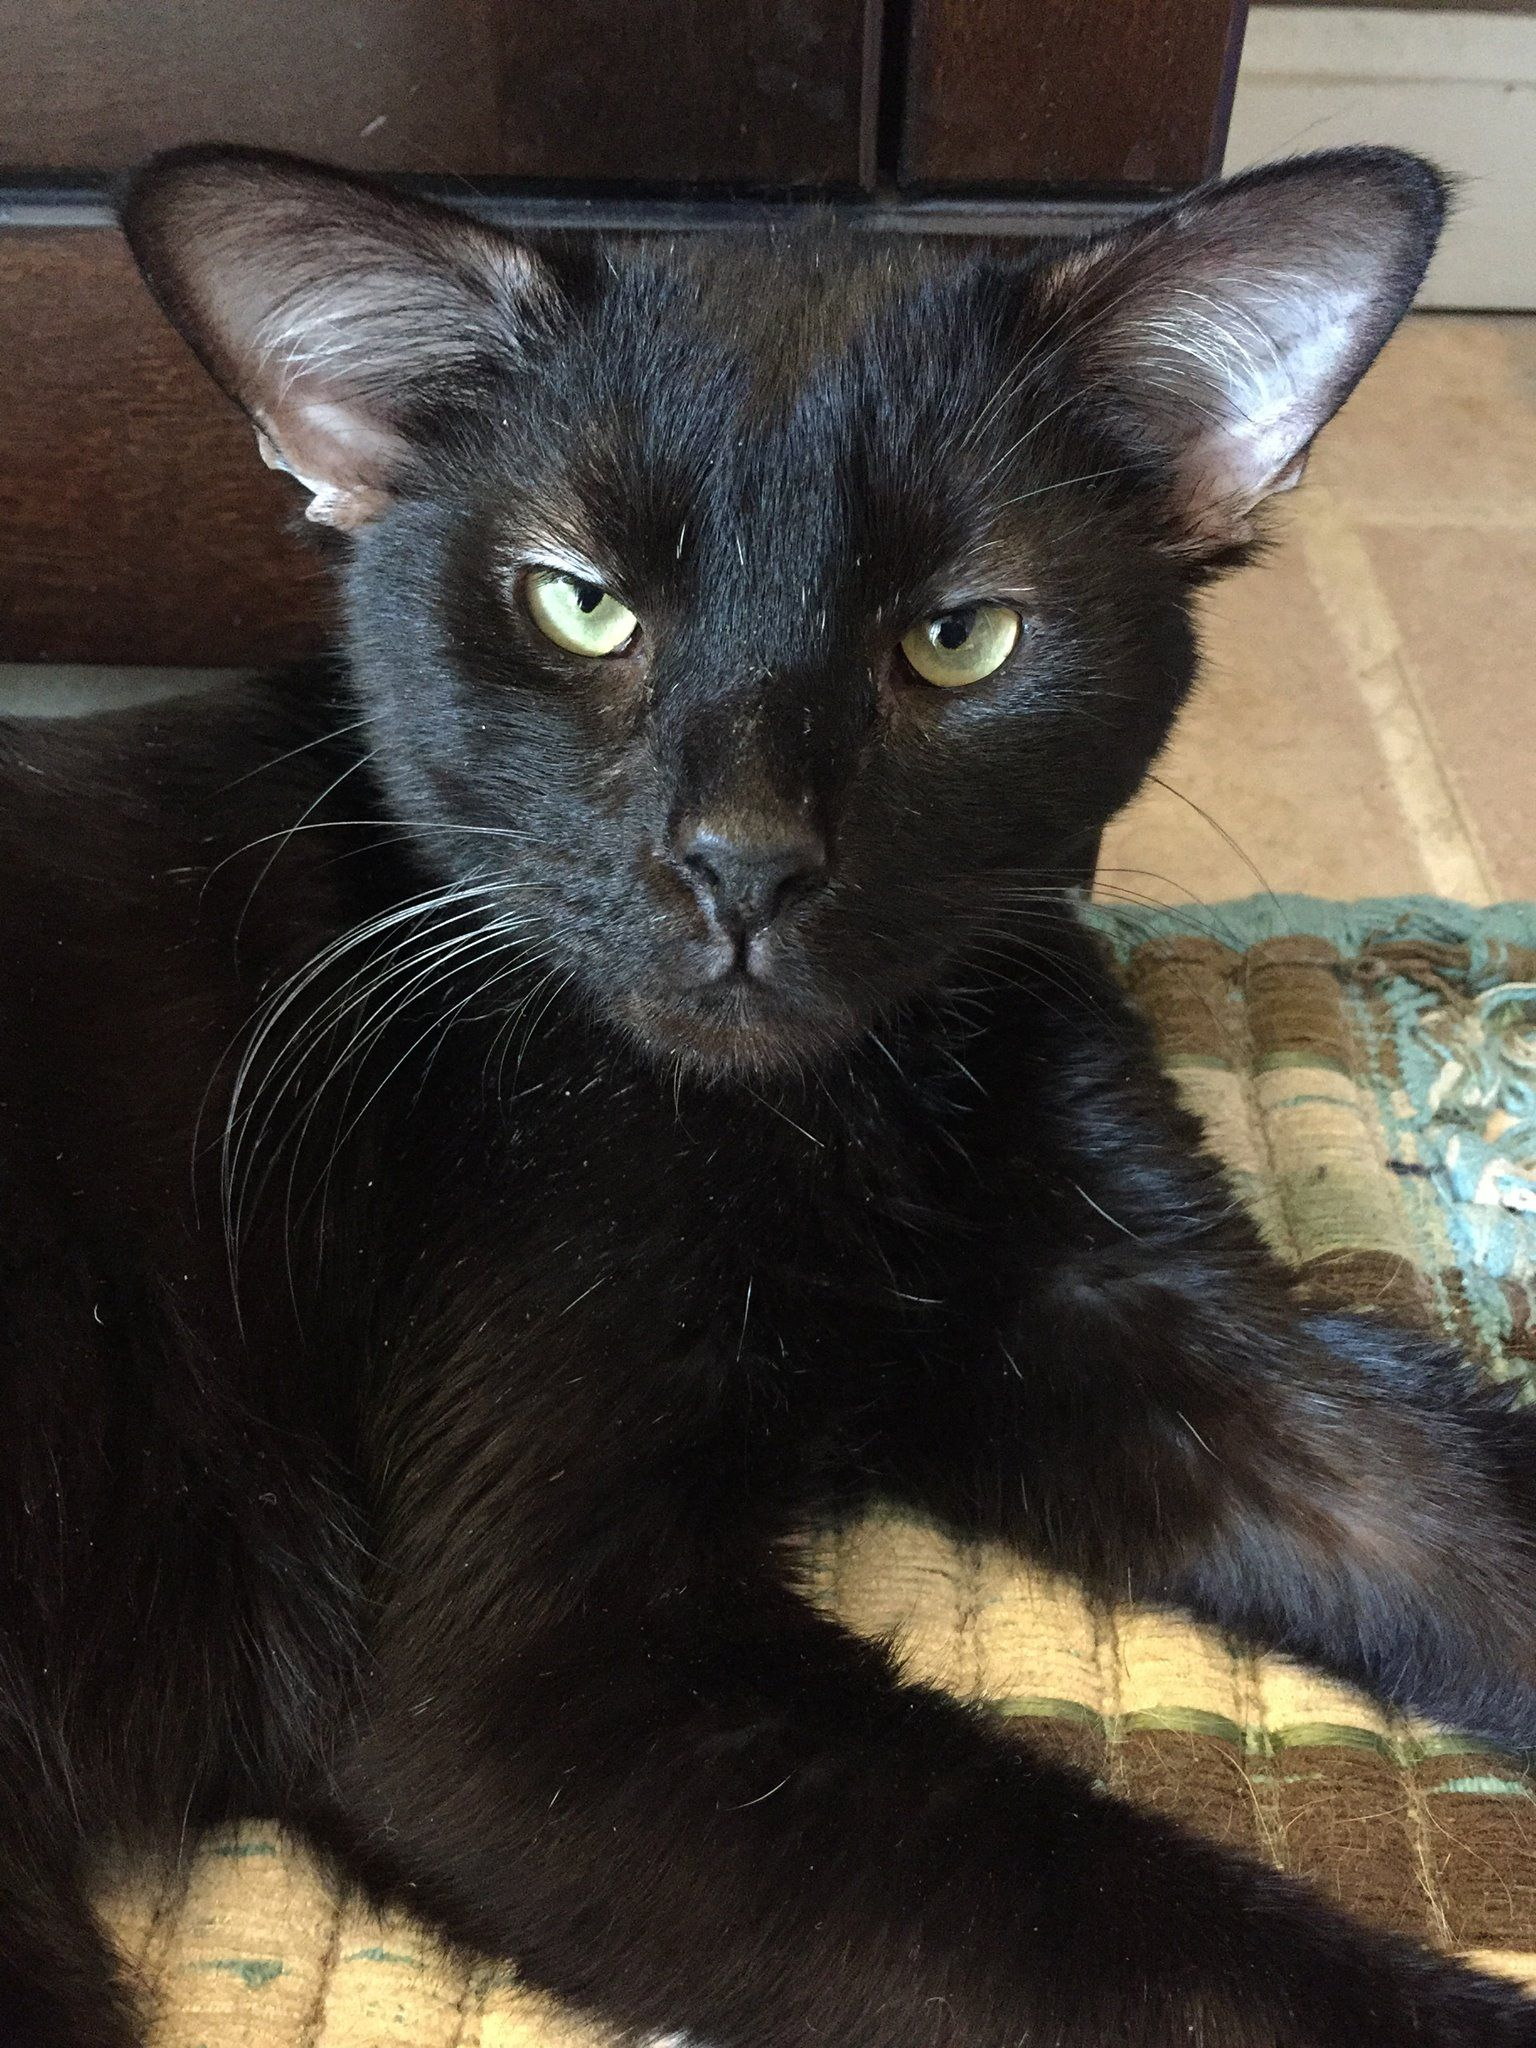 4 Eared Batman Cat Adopted By Girl Who Loves Superheroes Beautiful Cats Cats Cats And Kittens